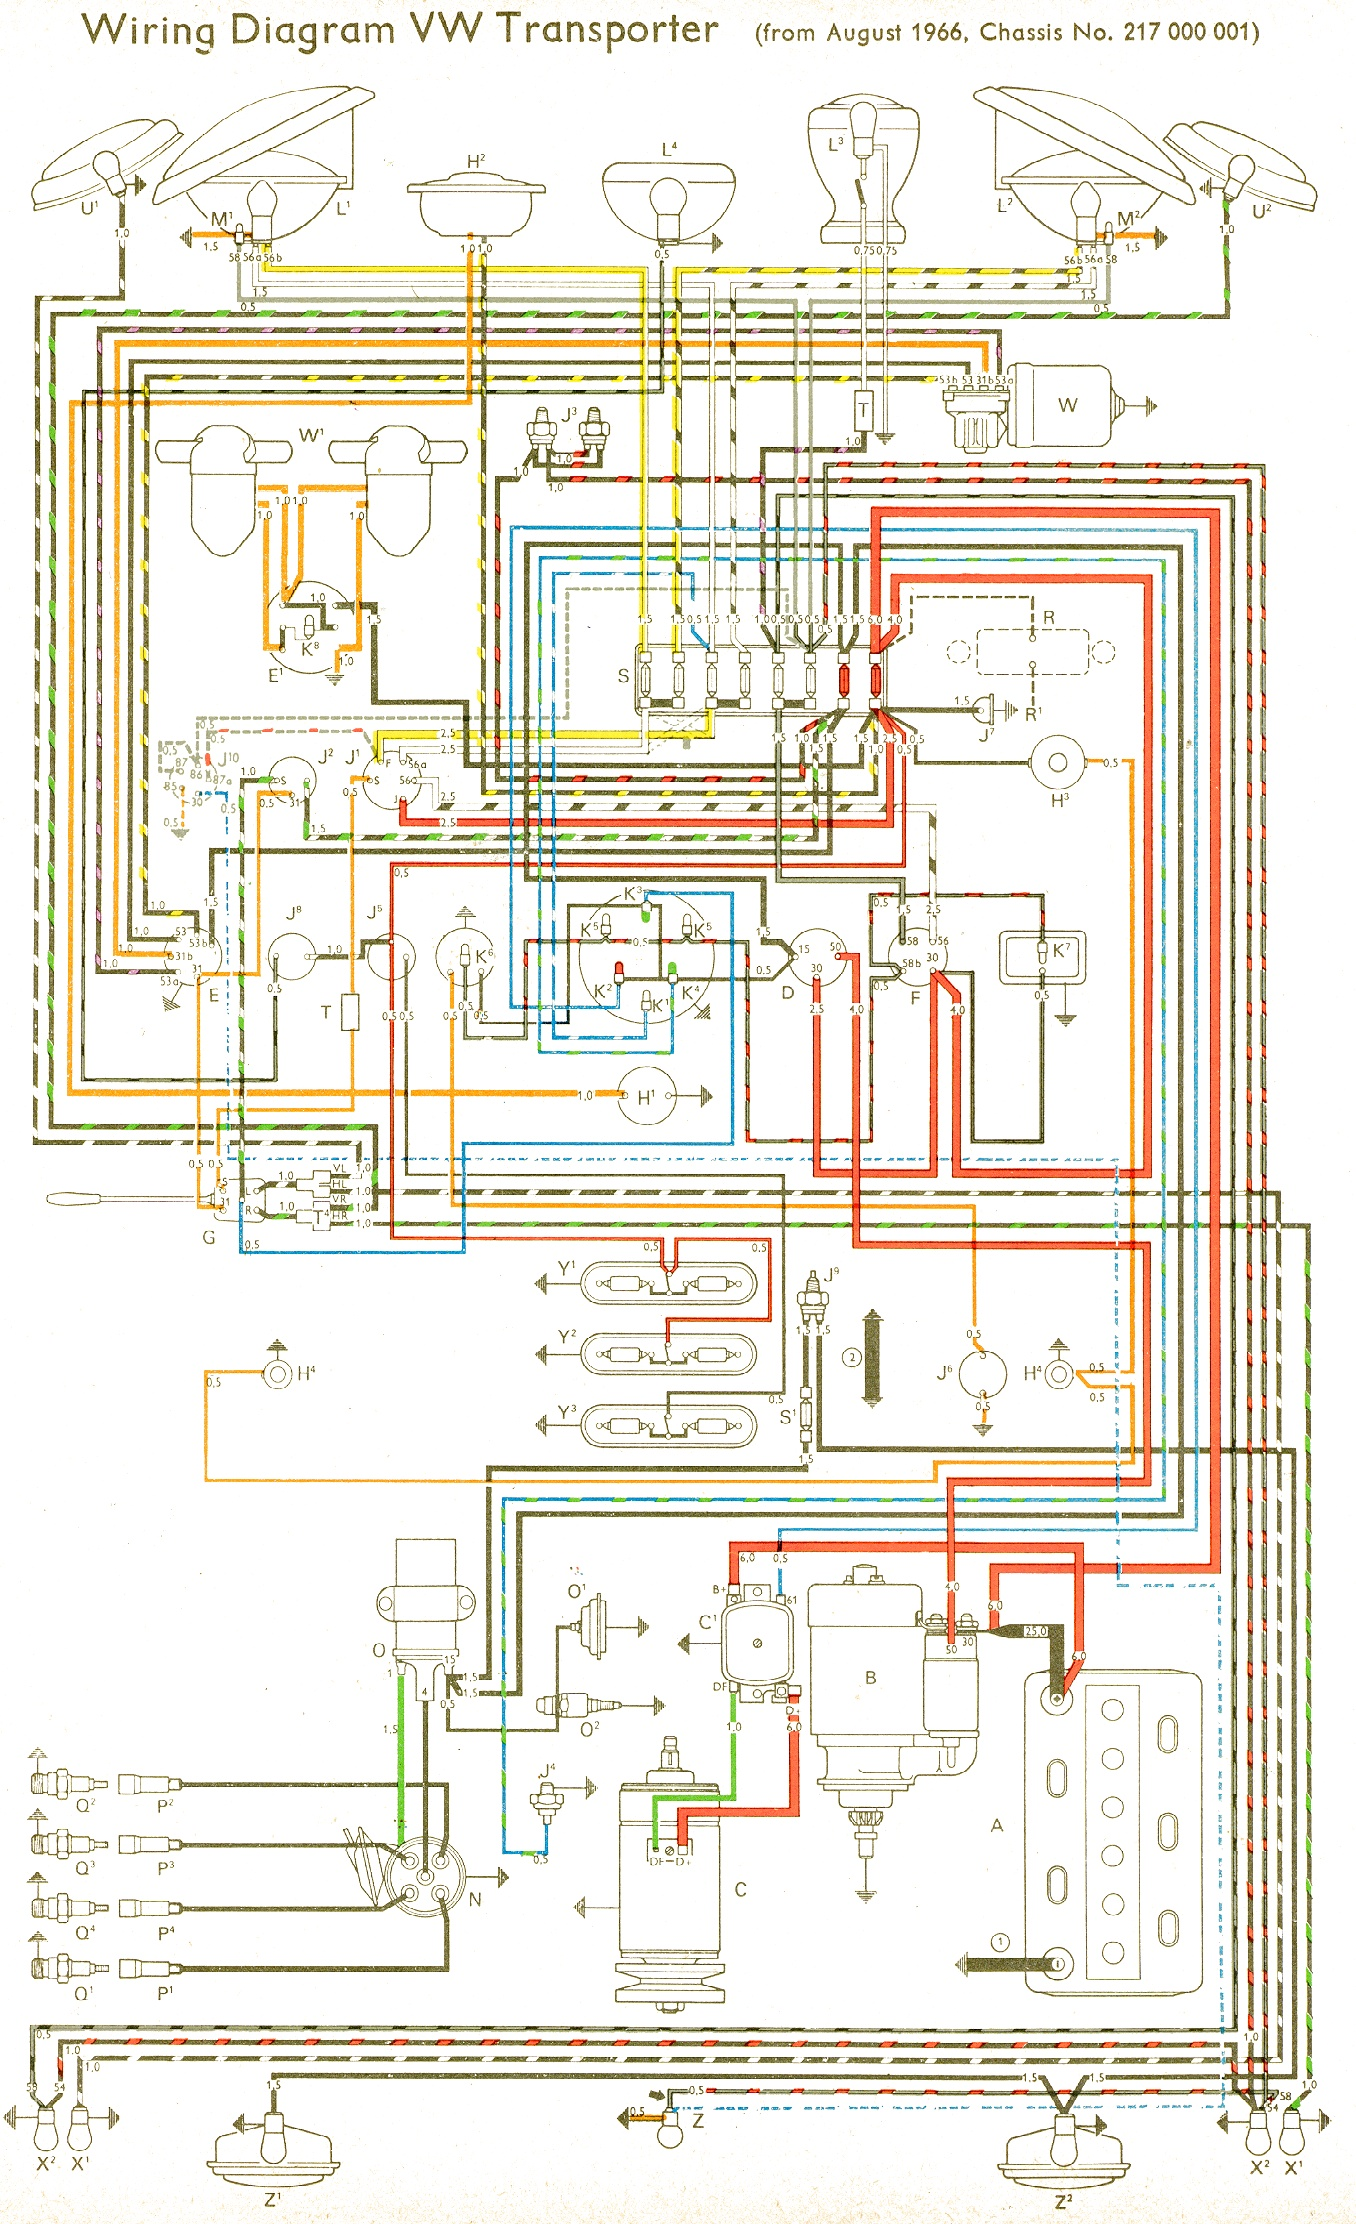 bus 66 bus wiring diagram vw wiring harness diagram \u2022 wiring diagrams j 1968 vw bus fuse box at eliteediting.co